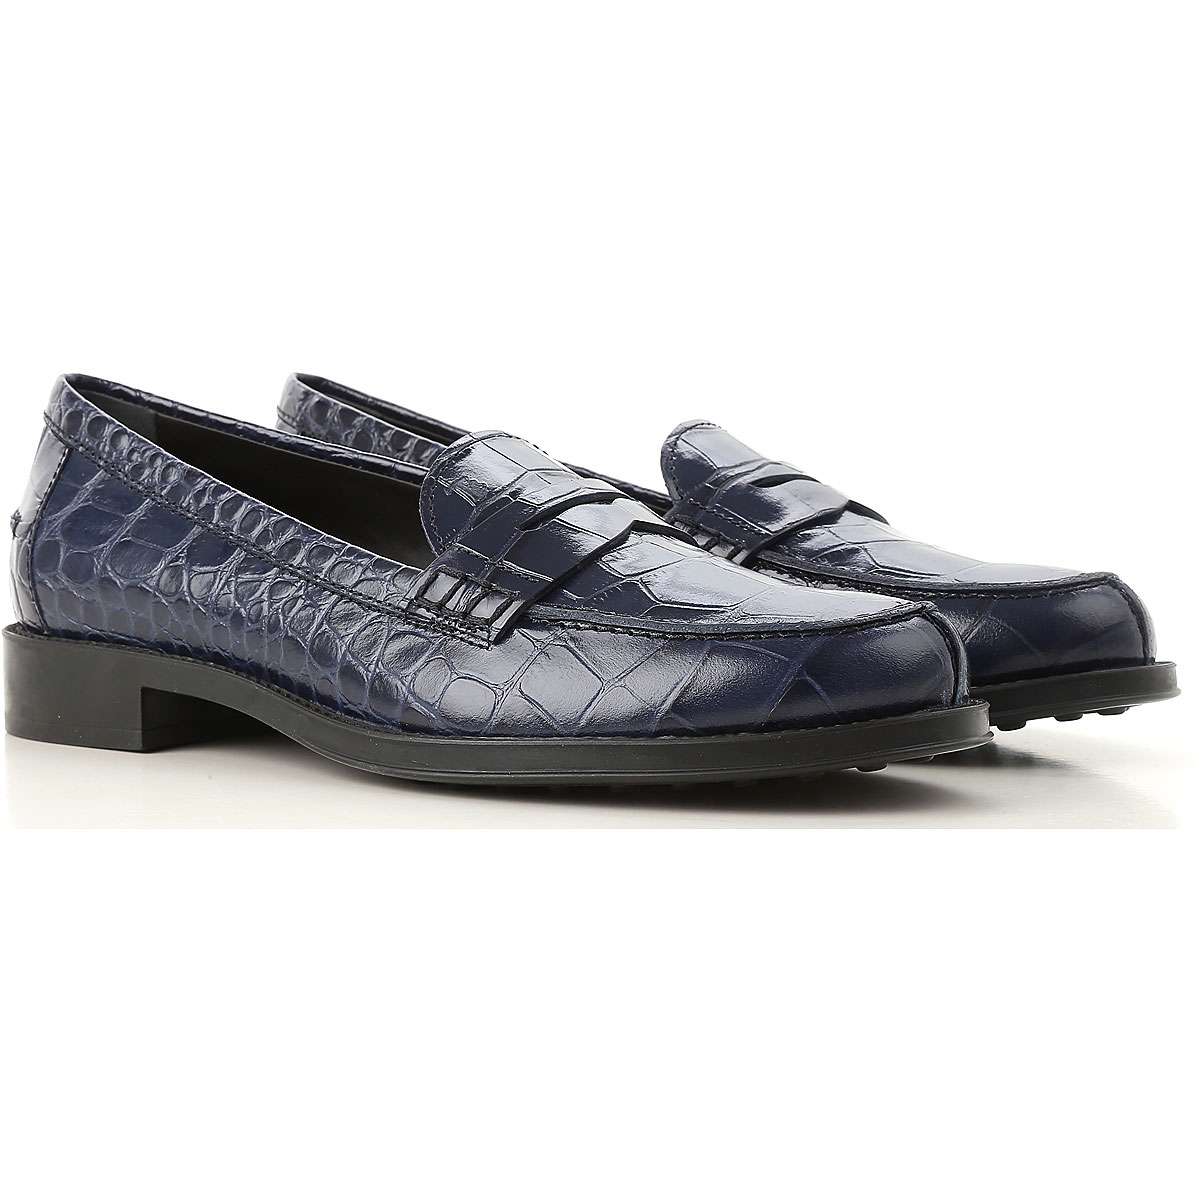 Tods Loafers for Women Blue USA - GOOFASH